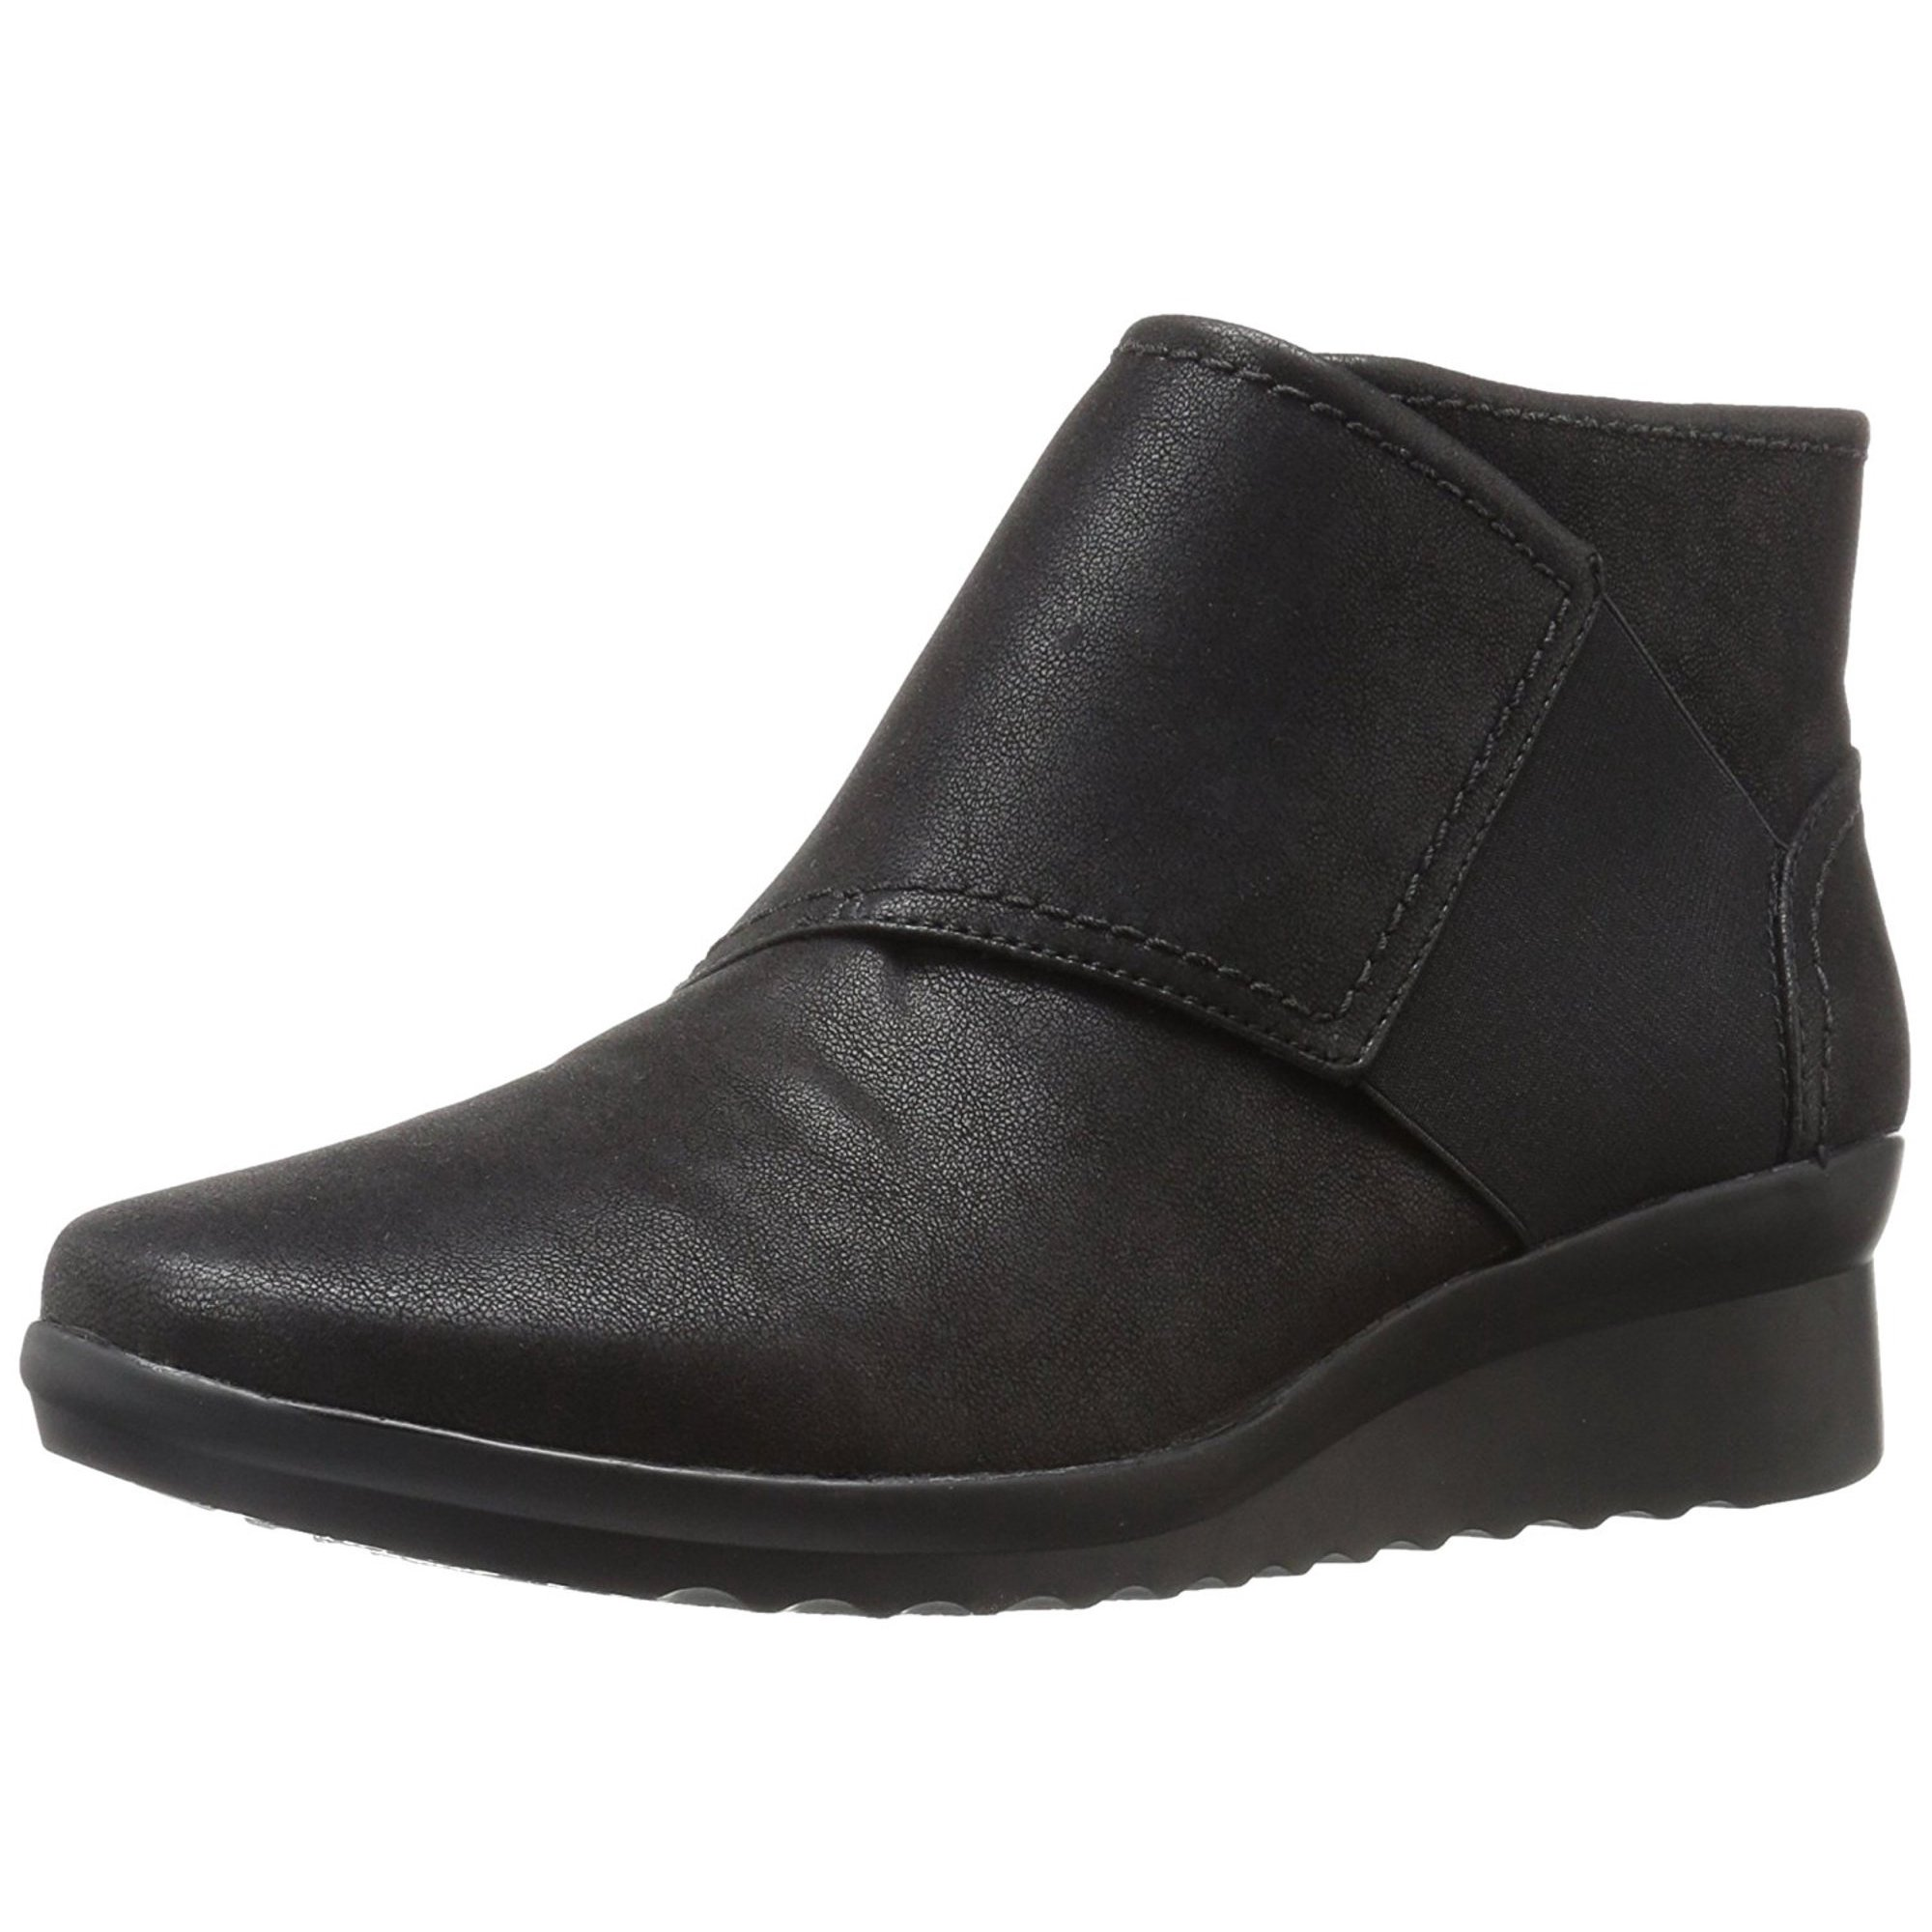 e7da3faaf5 CLARKS Womens Caddell Rush Closed Toe Ankle Cold Weather Boots